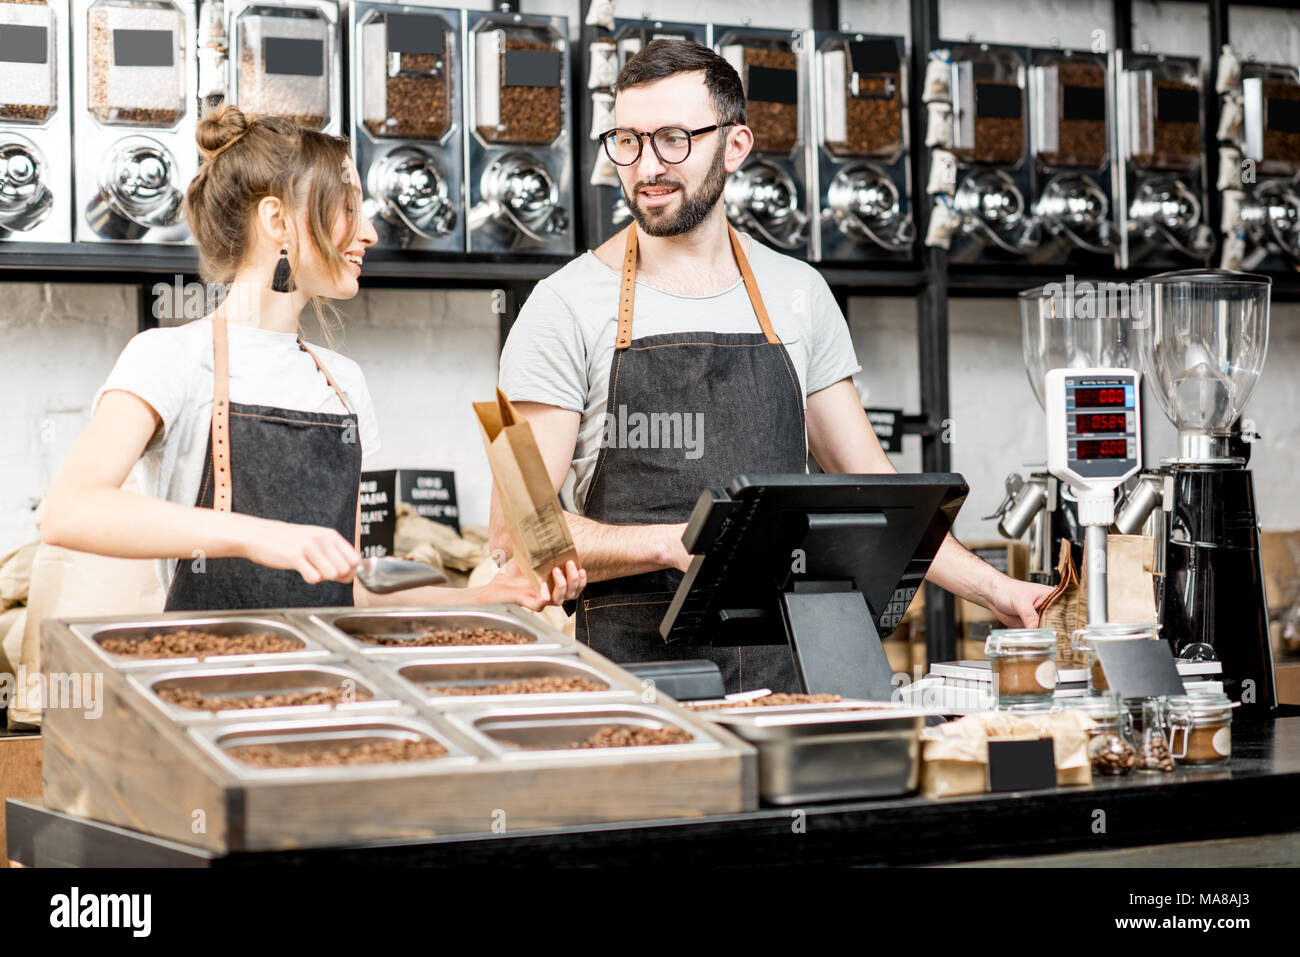 Two sellers in uniform filling bags with coffee beans while working in the coffee store - Stock Image